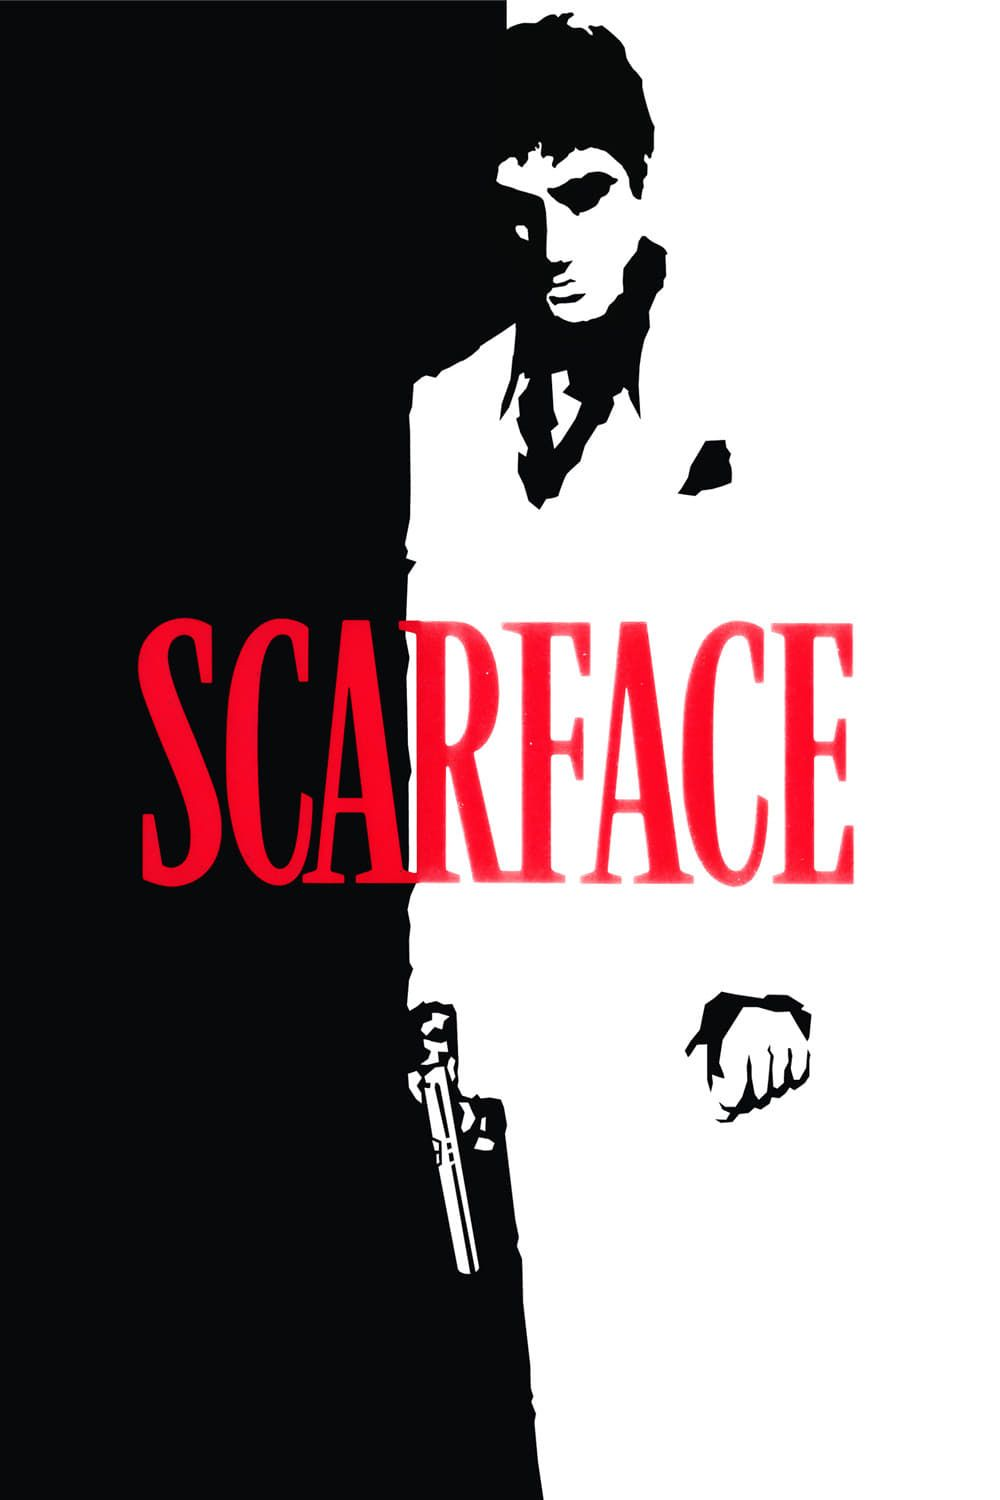 Descargar Scarface 1983 Pelicula Completa Ver Hd Espanol Latino Online Scarface Movie Scarface Poster Iconic Movie Posters